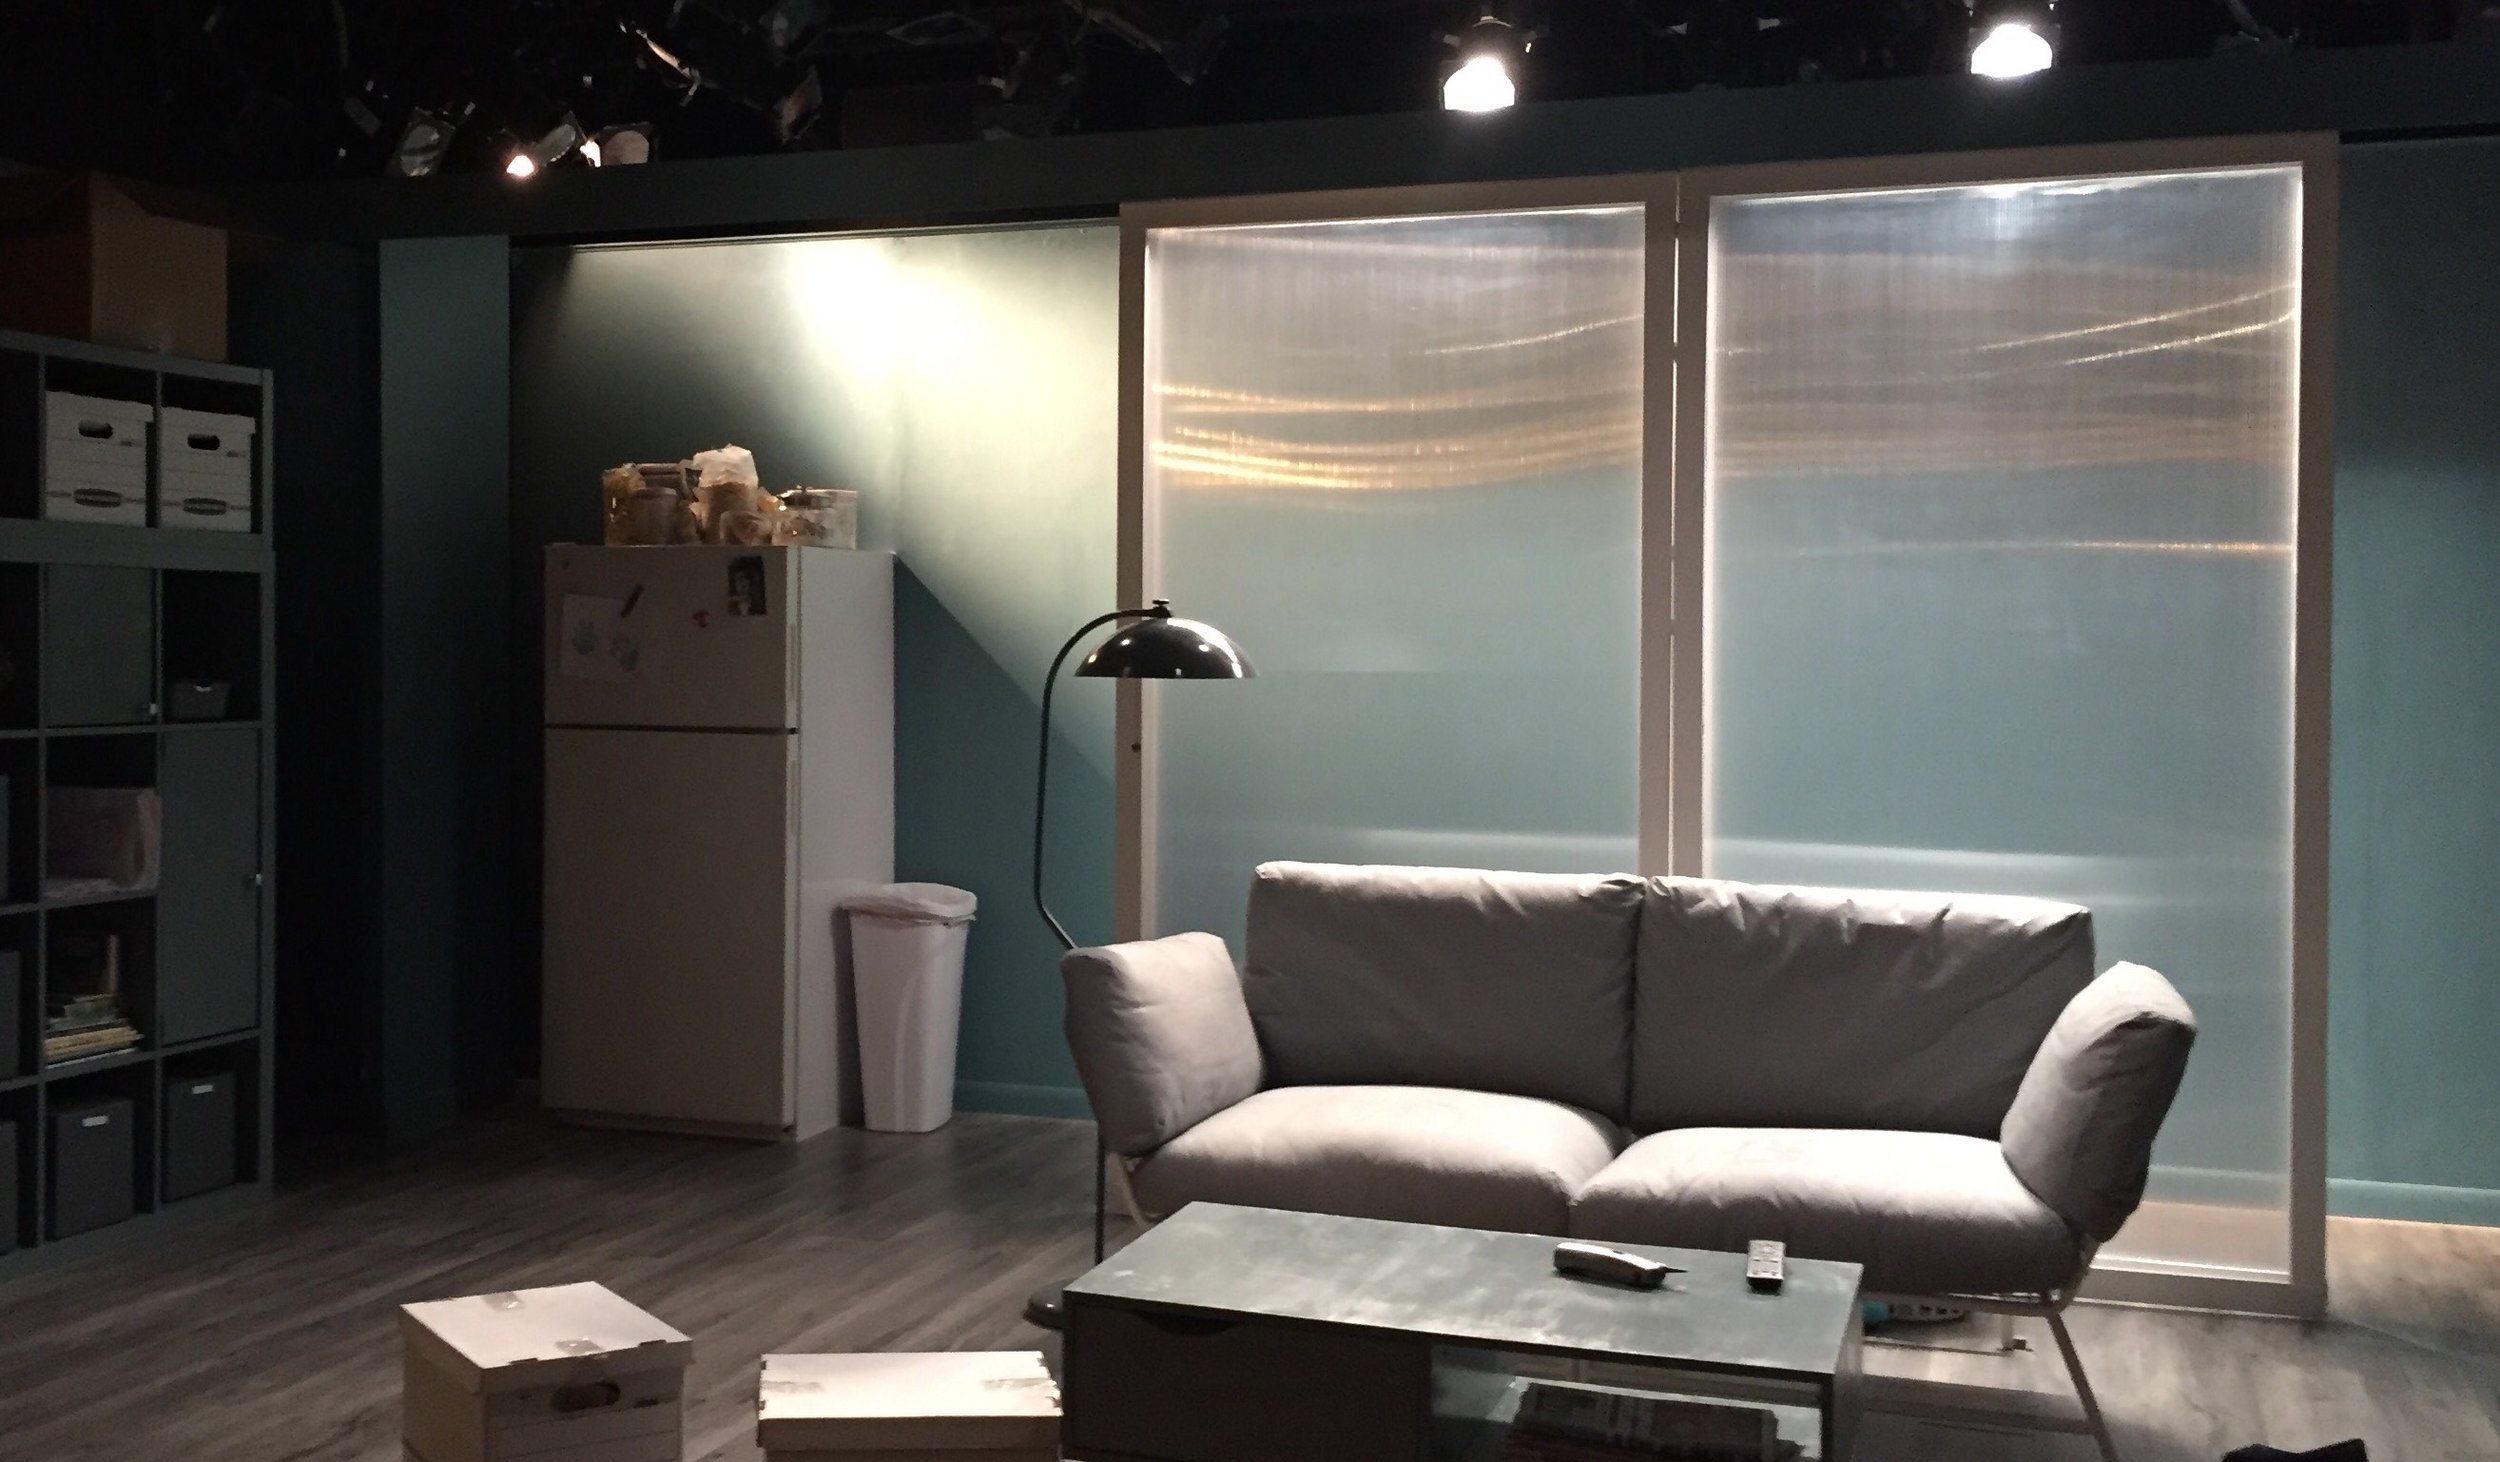 The aftermath of the play at the Cherry Lane - great use of stage props to focus the audience's attention.